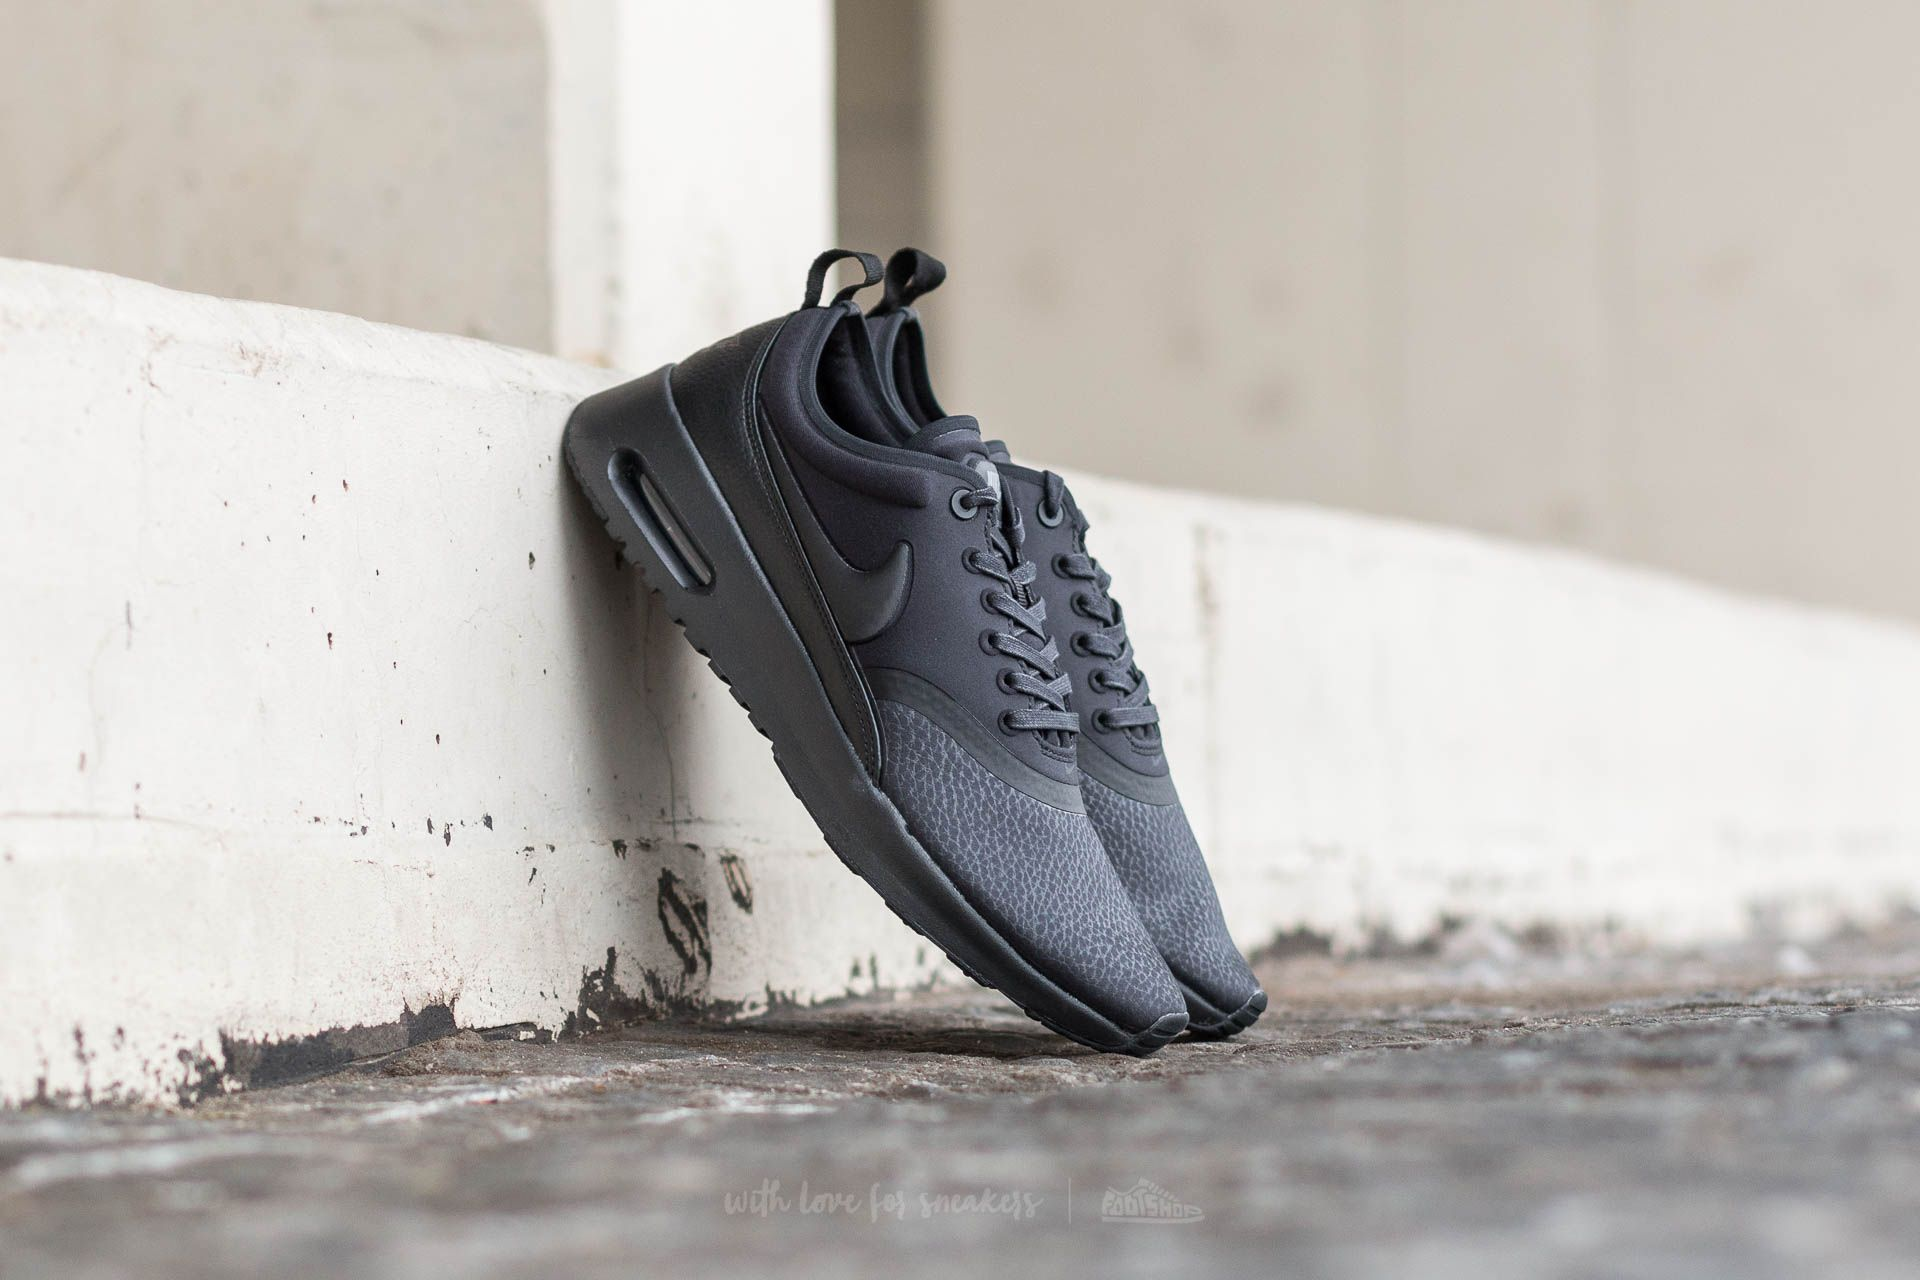 48aeecc672 Nike W Air Max Thea Ultra Premium Black/ Black-Cool Grey | Footshop